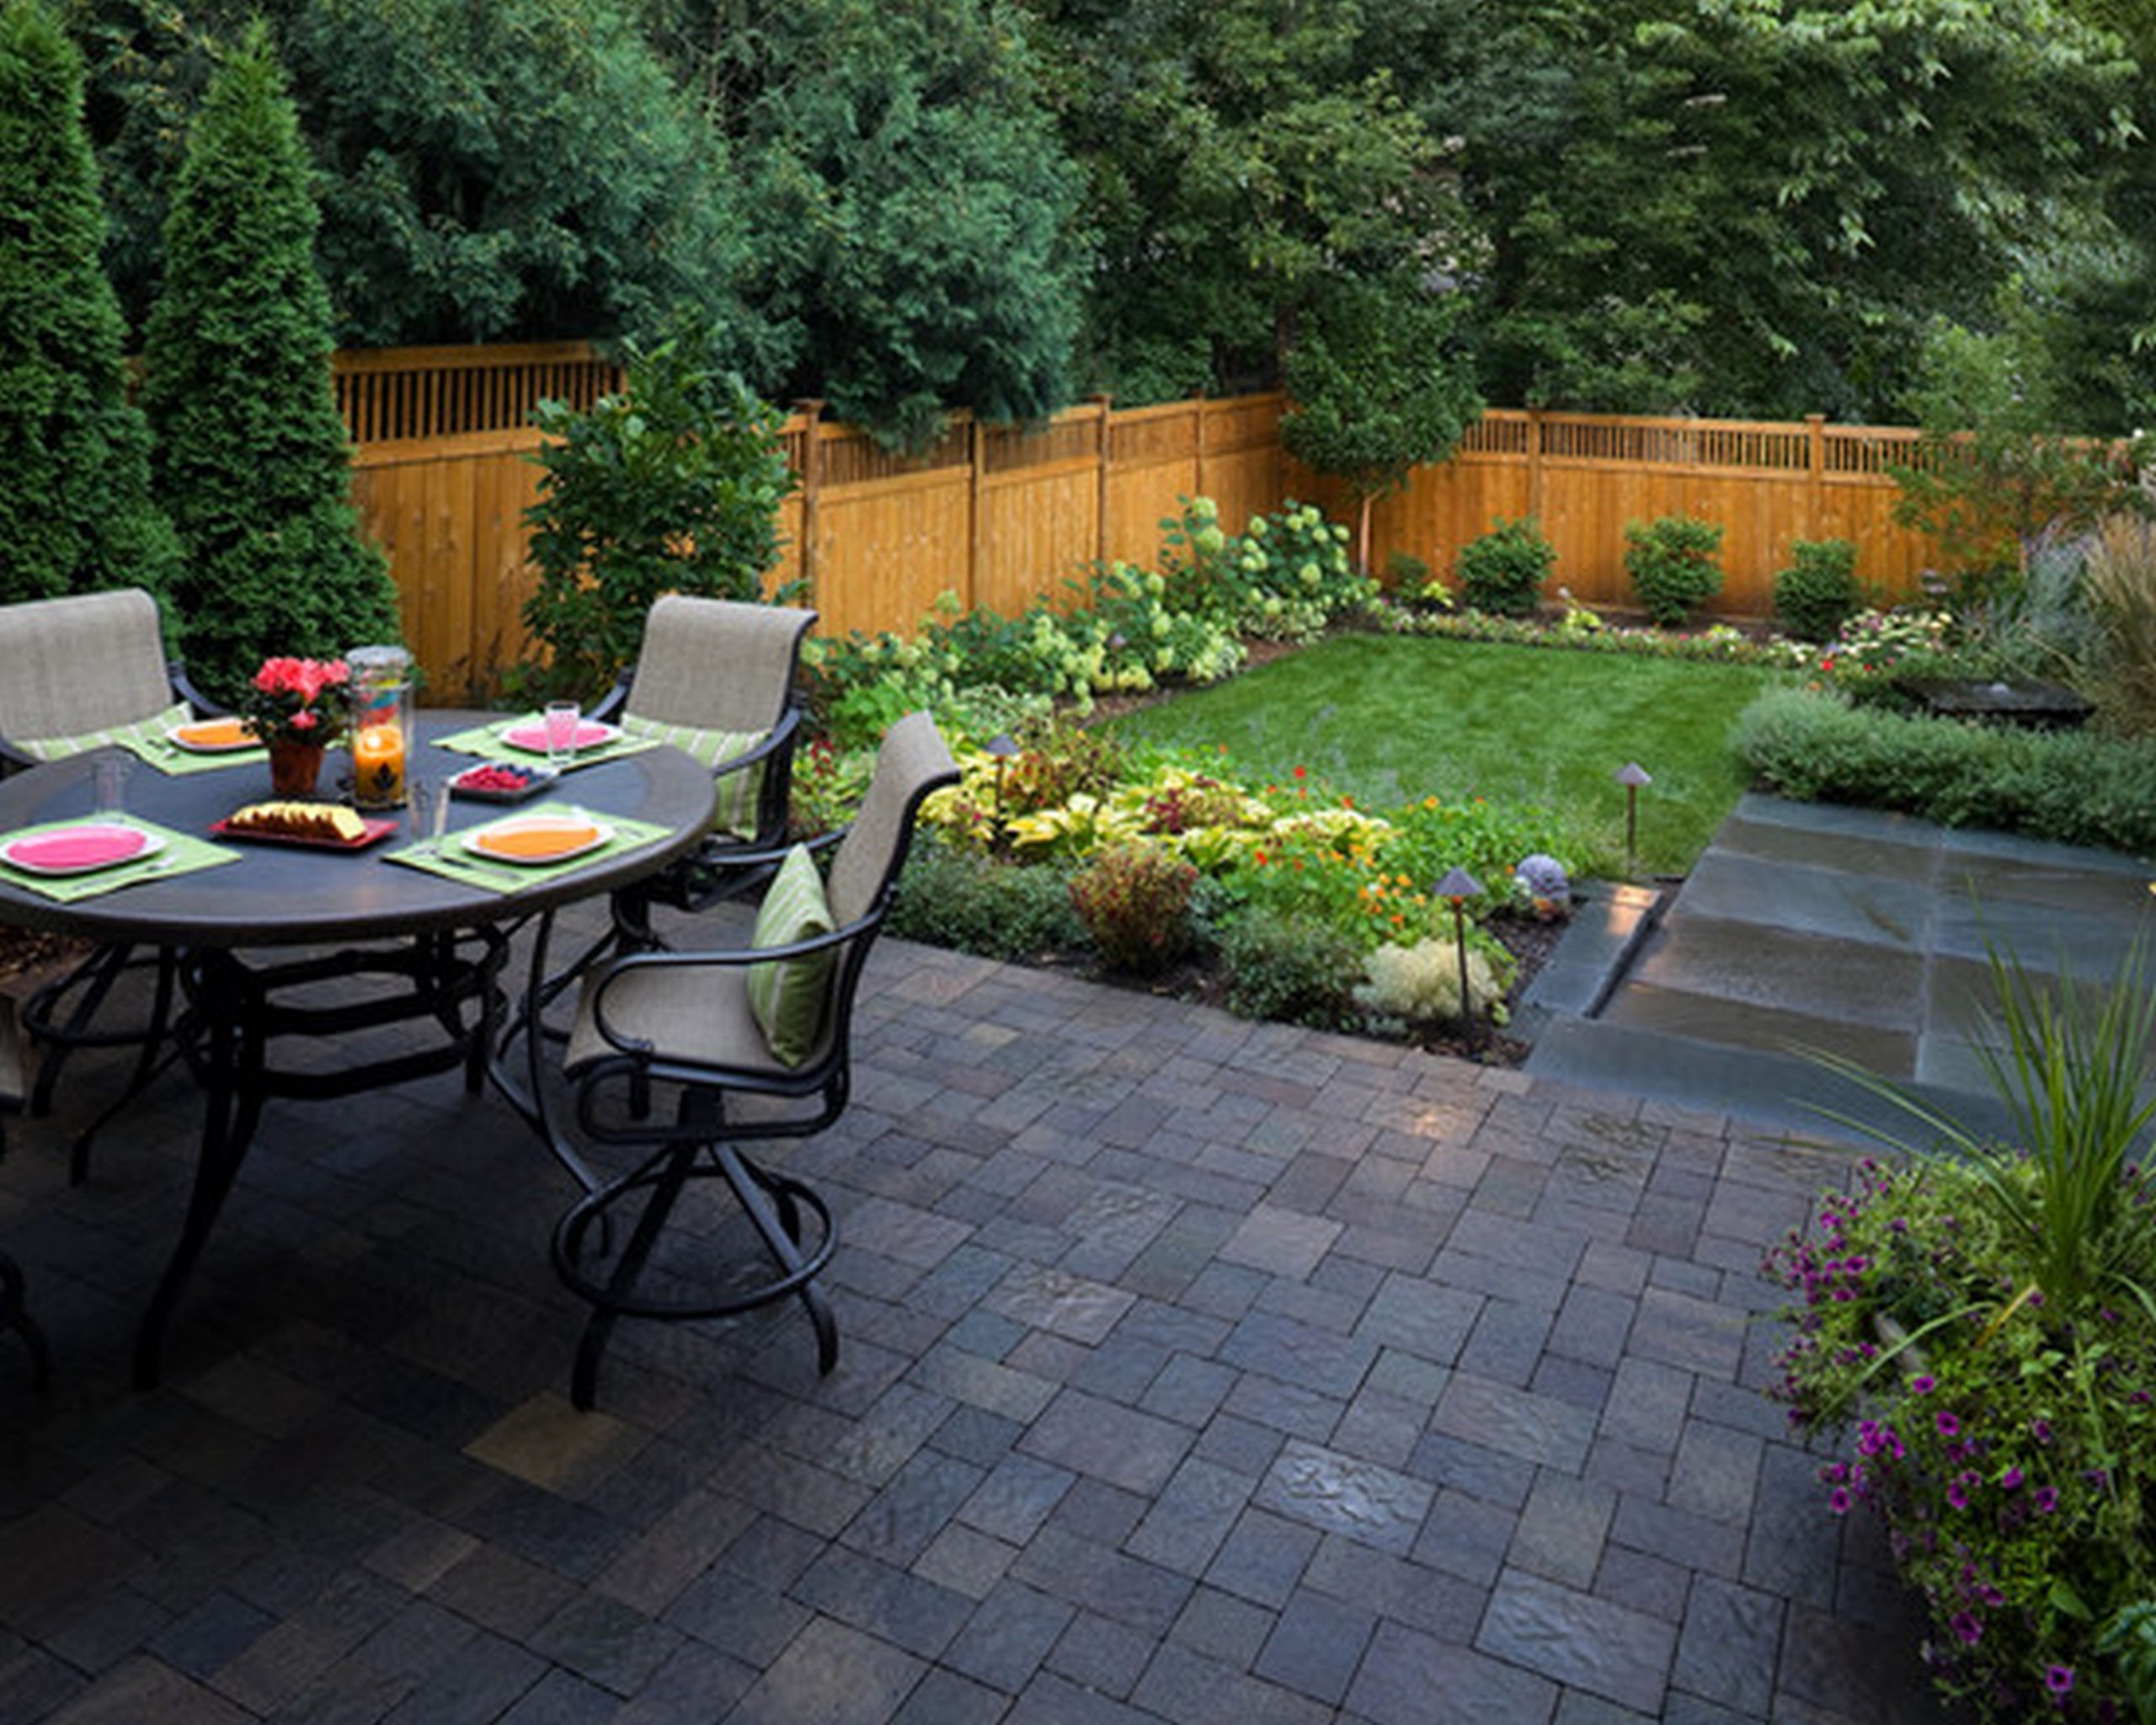 Apartment Back Patio Ideas In Yard Design Landscaping Small  - Apartment Yard Design